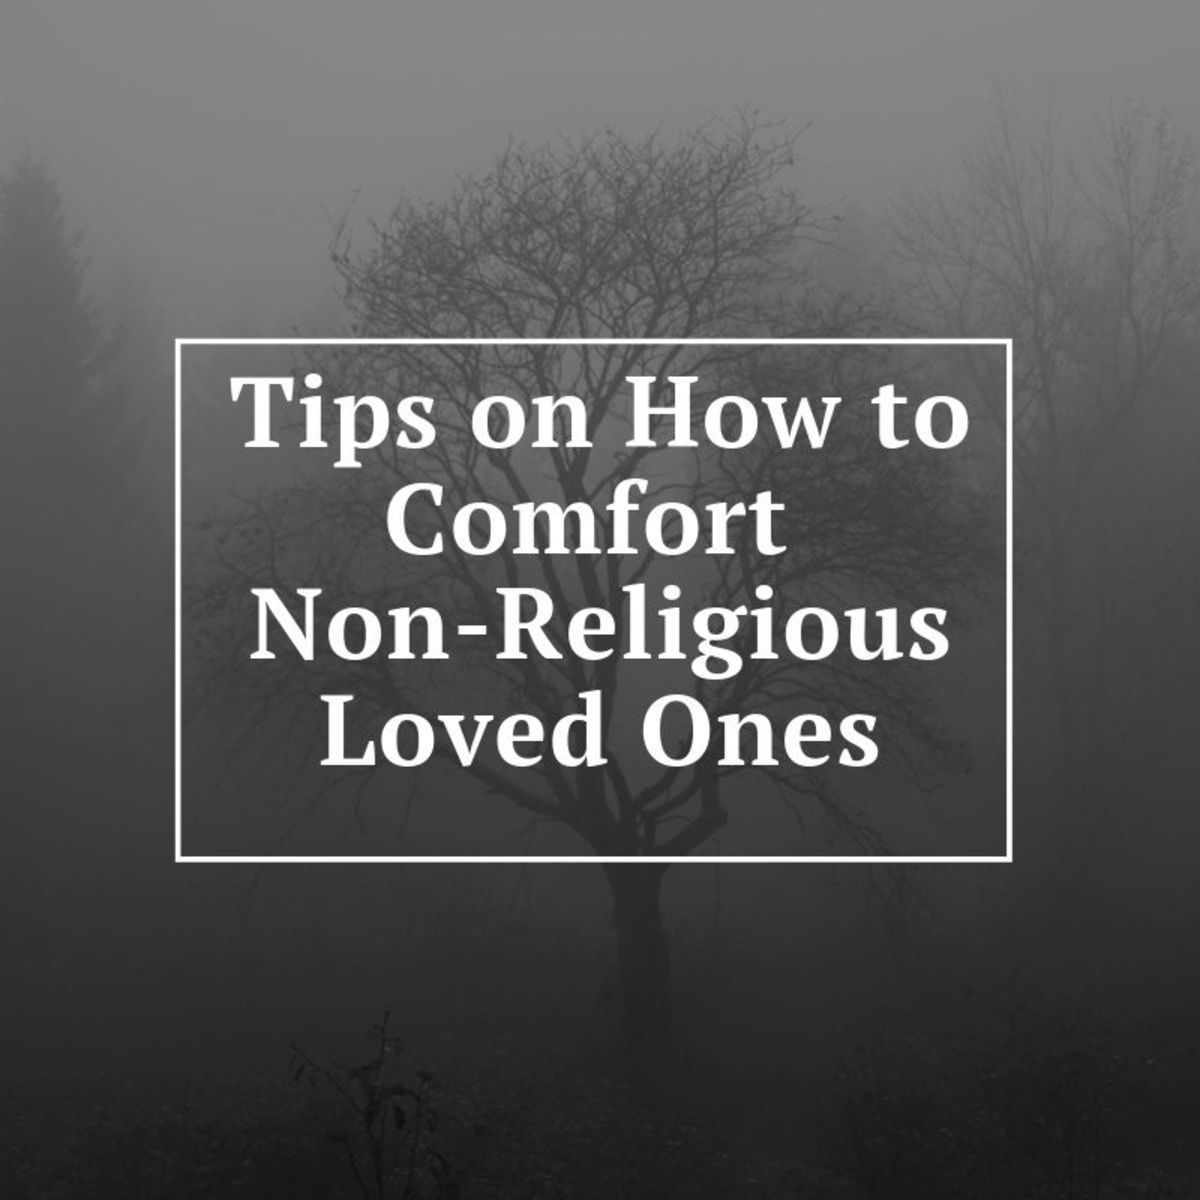 How to Comfort Non-Religious Loved Ones